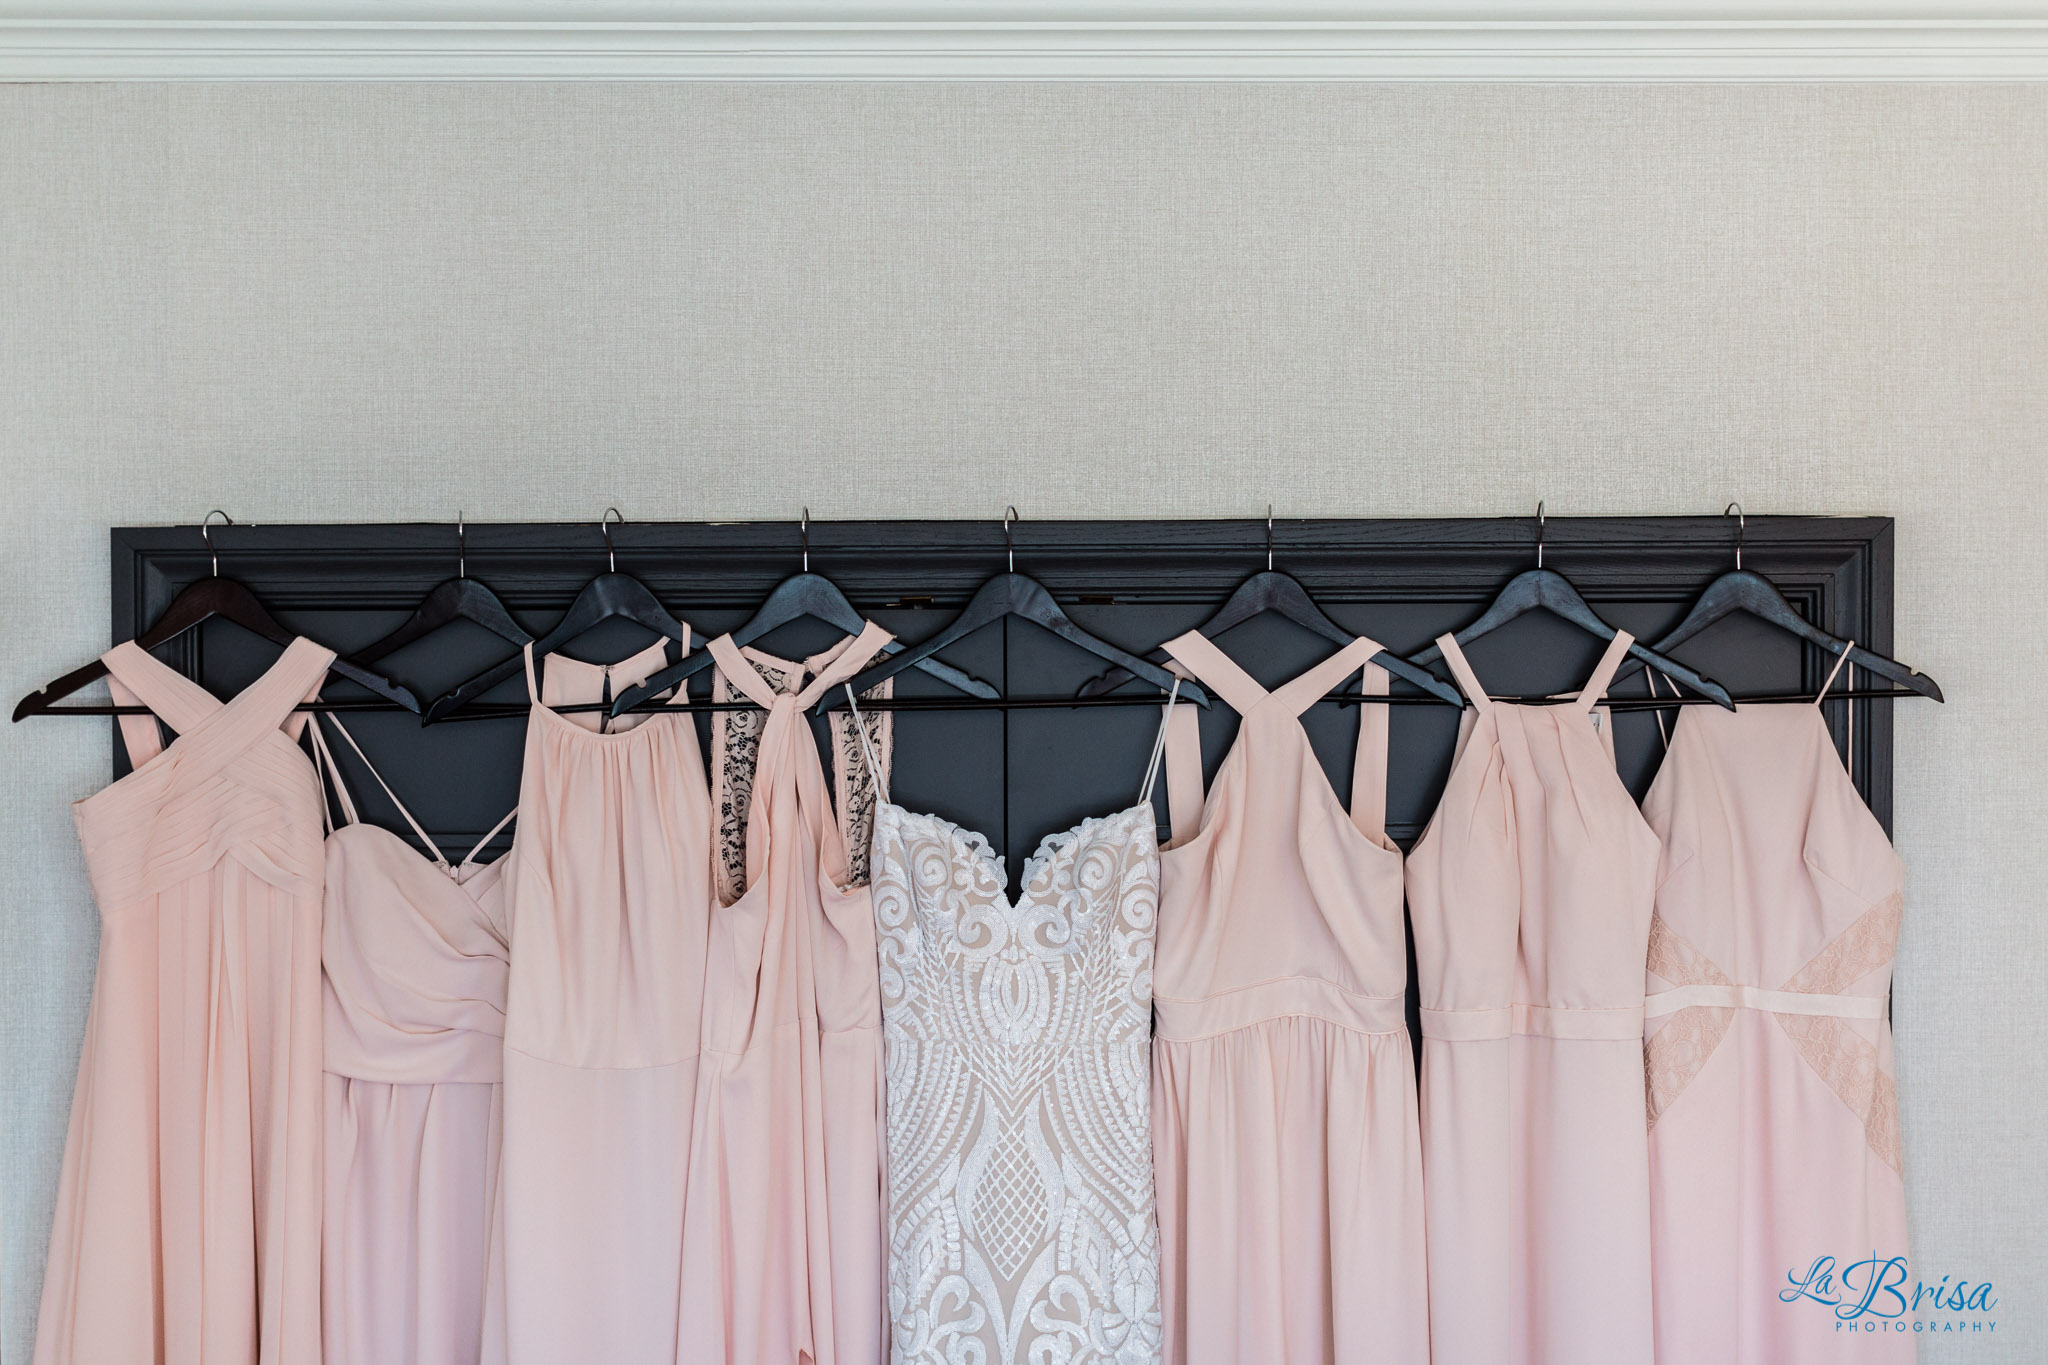 wedding gown hung next to peach bridesmaids dresses